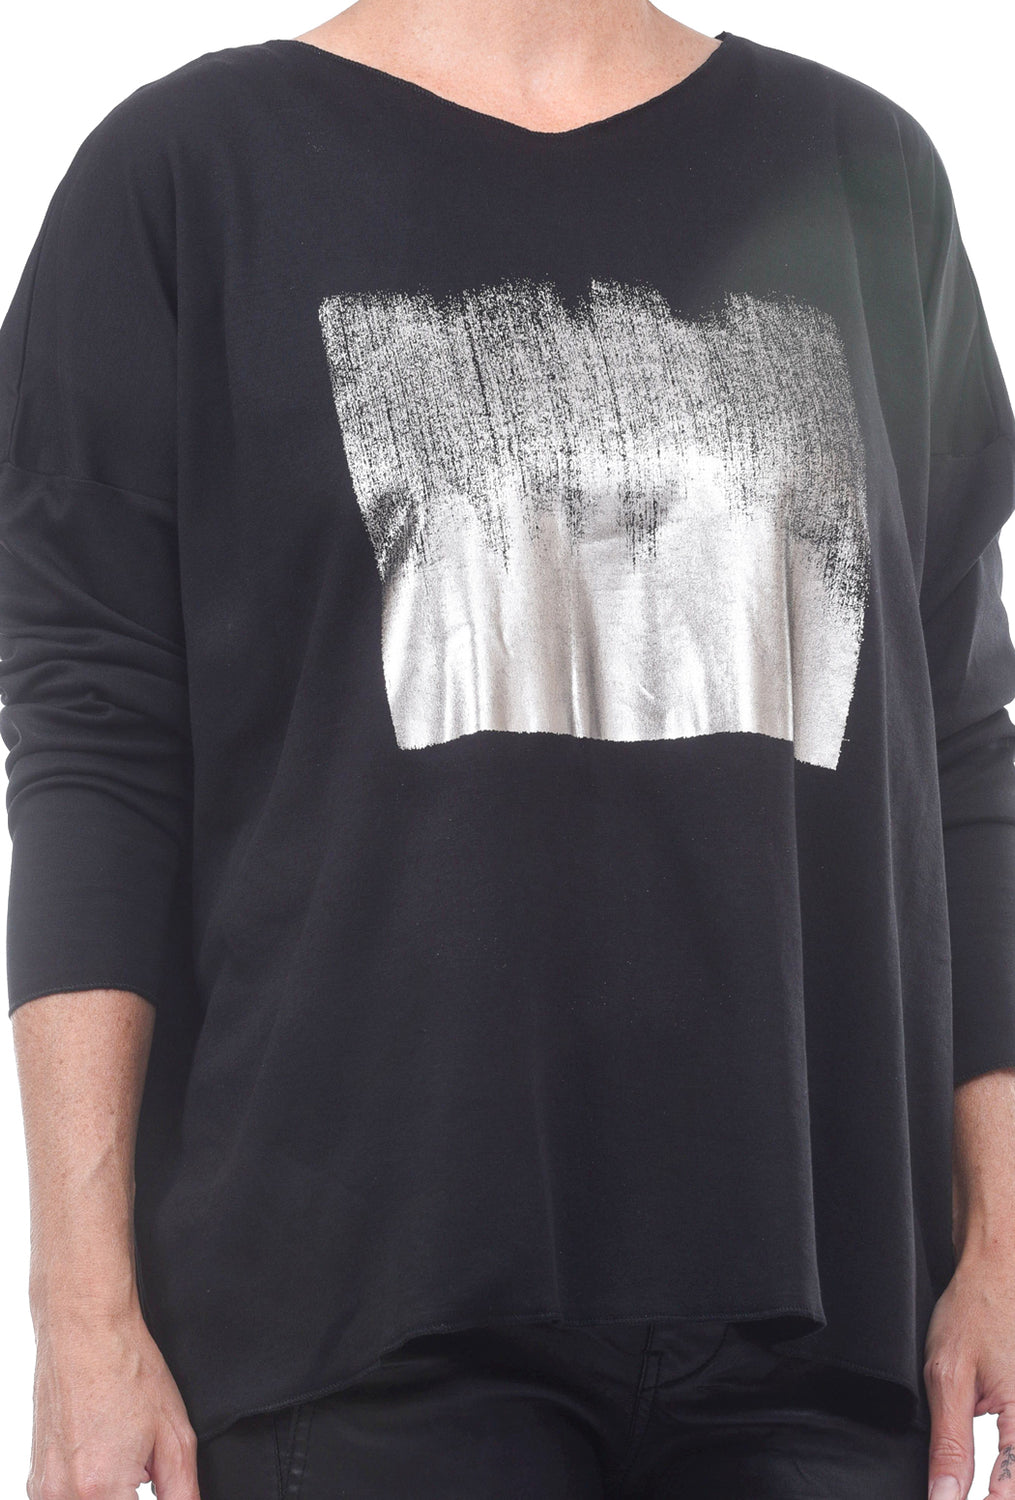 Planet Foil Hipster Tee, Black/Pewter One Size Black